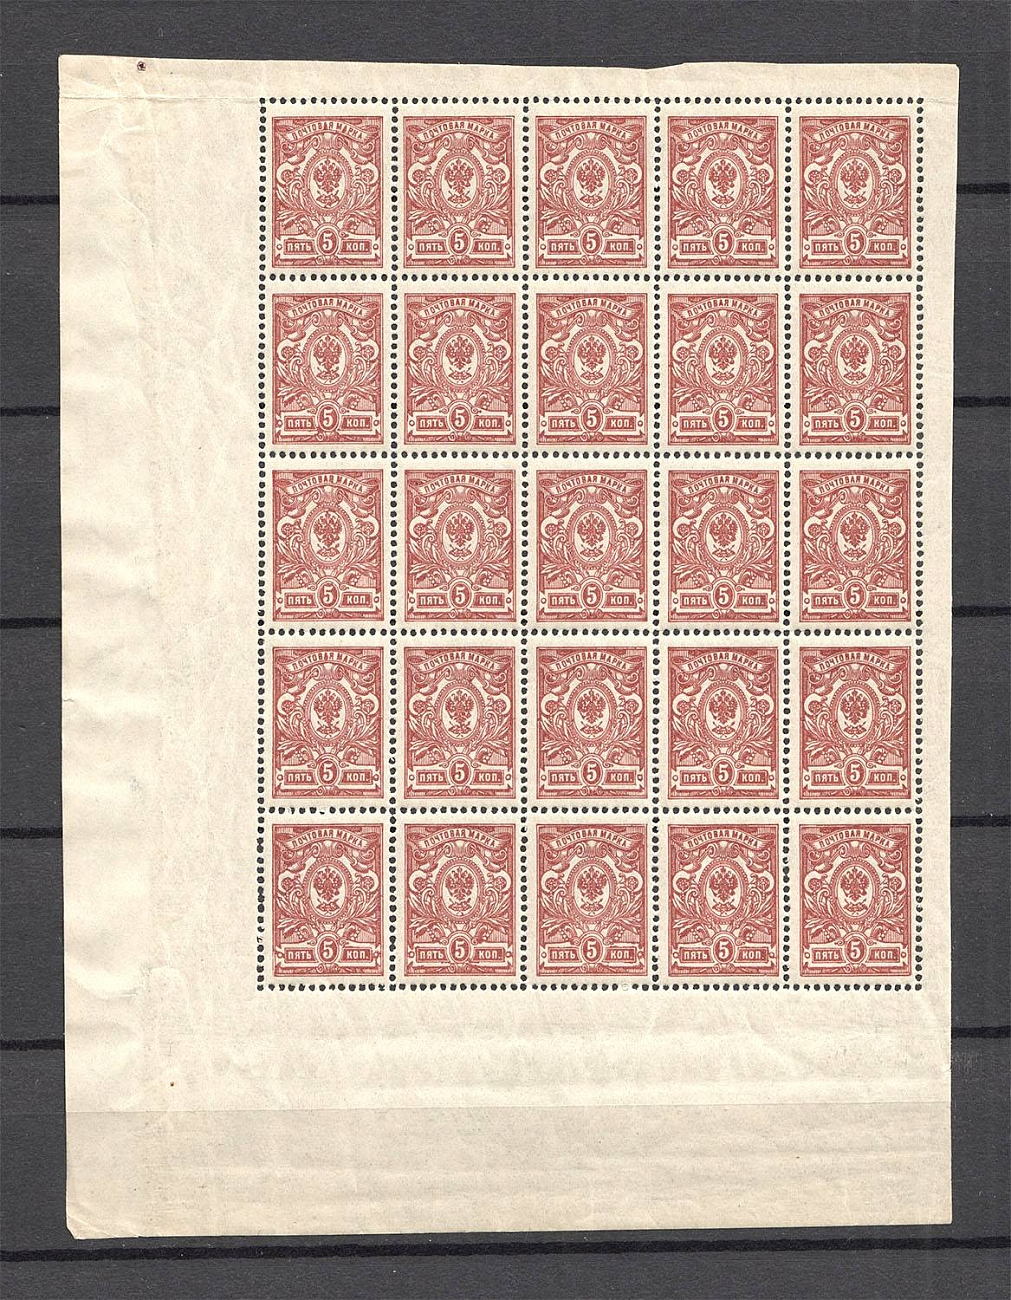 Lot 21 - Russia: Empire & Offices Abroad blocks -  OldLouis Auctions Russia: Empire & Offices Abroad - Rare Stamps Auction №8